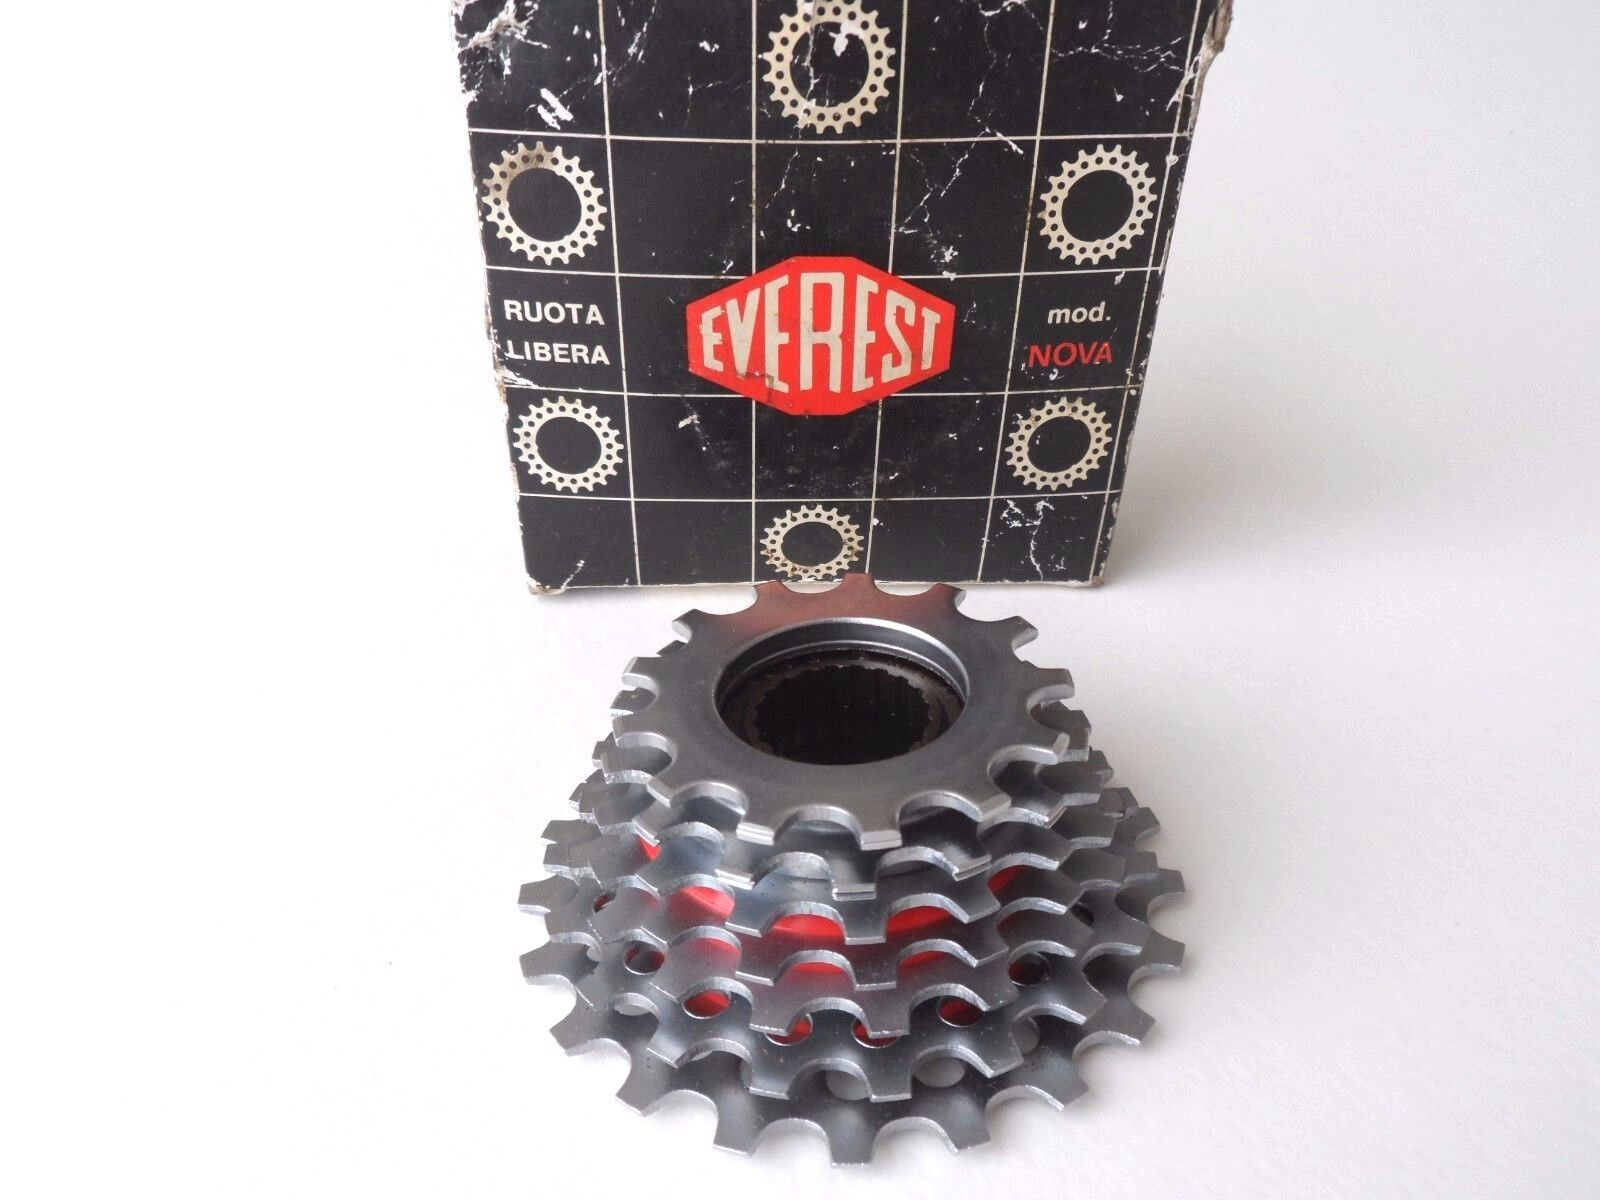 NOS Vintage 1980s EVEREST NOVA 13-21 cogs 7 Speed ISO freewheel cassette